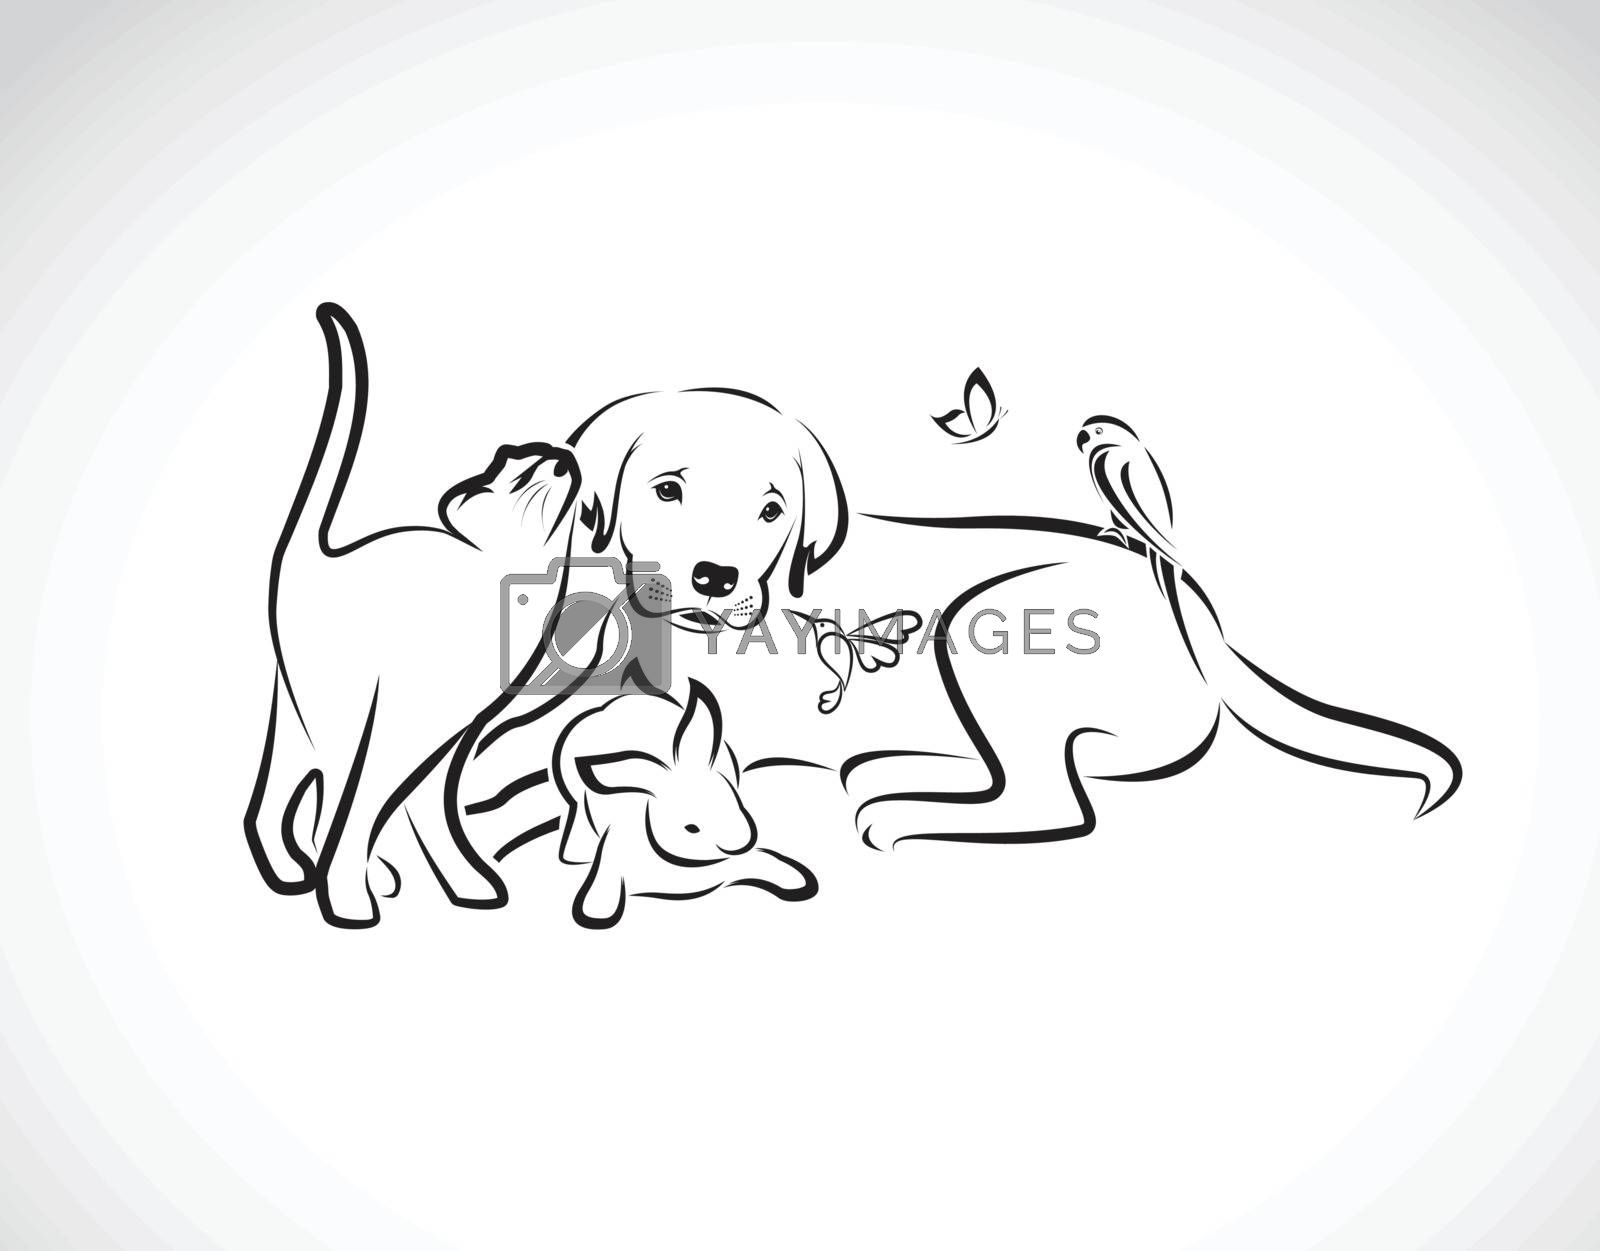 Vector group of pets - Dog, cat, parrot, rabbit, butterfly, Humm by yod67